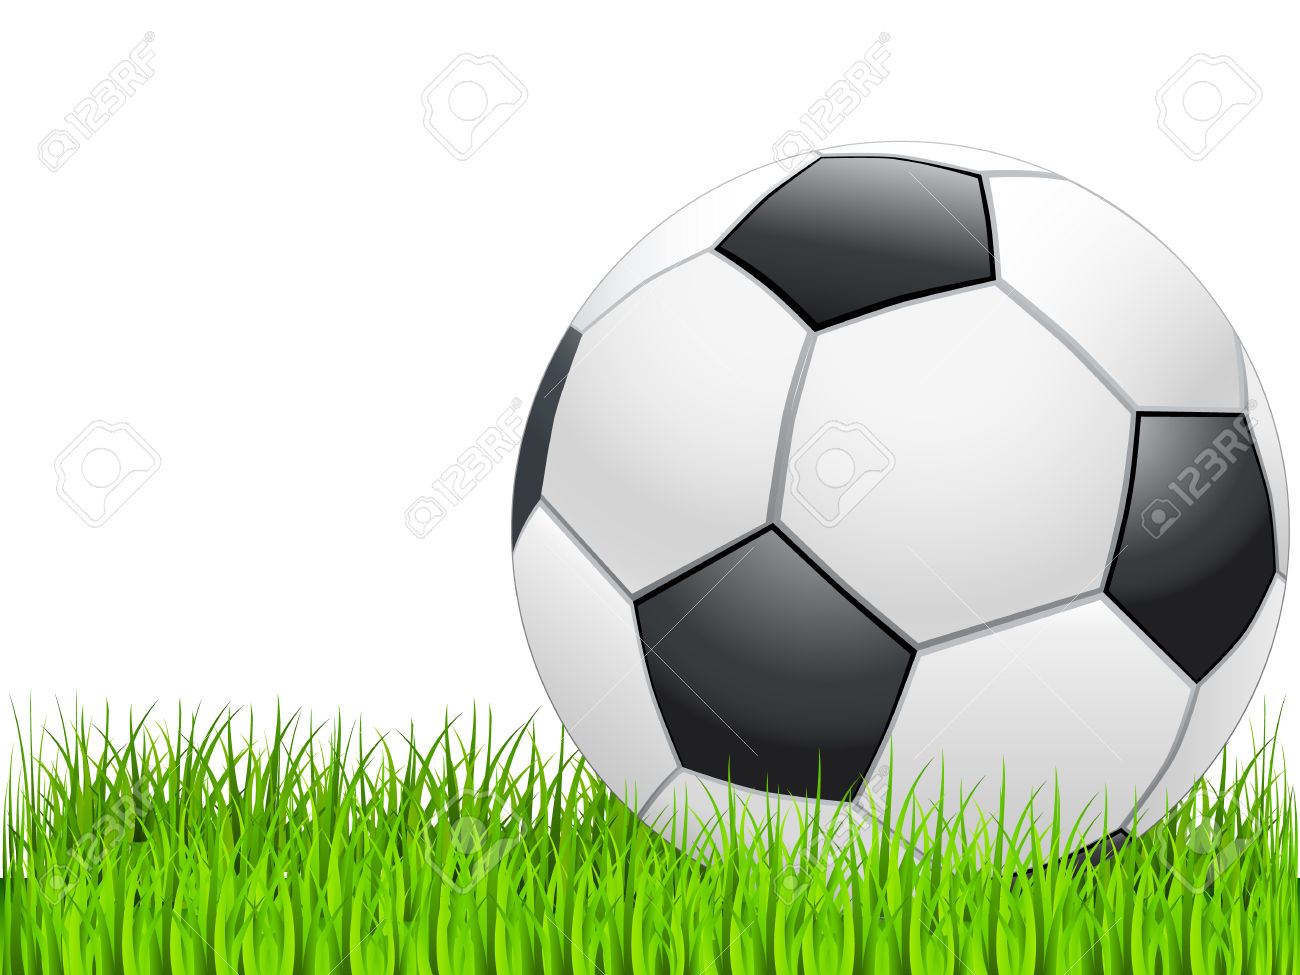 Soccer ball clipart green vector royalty free library Soccer Ball On Green Grass Royalty Free Cliparts, Vectors, And ... vector royalty free library